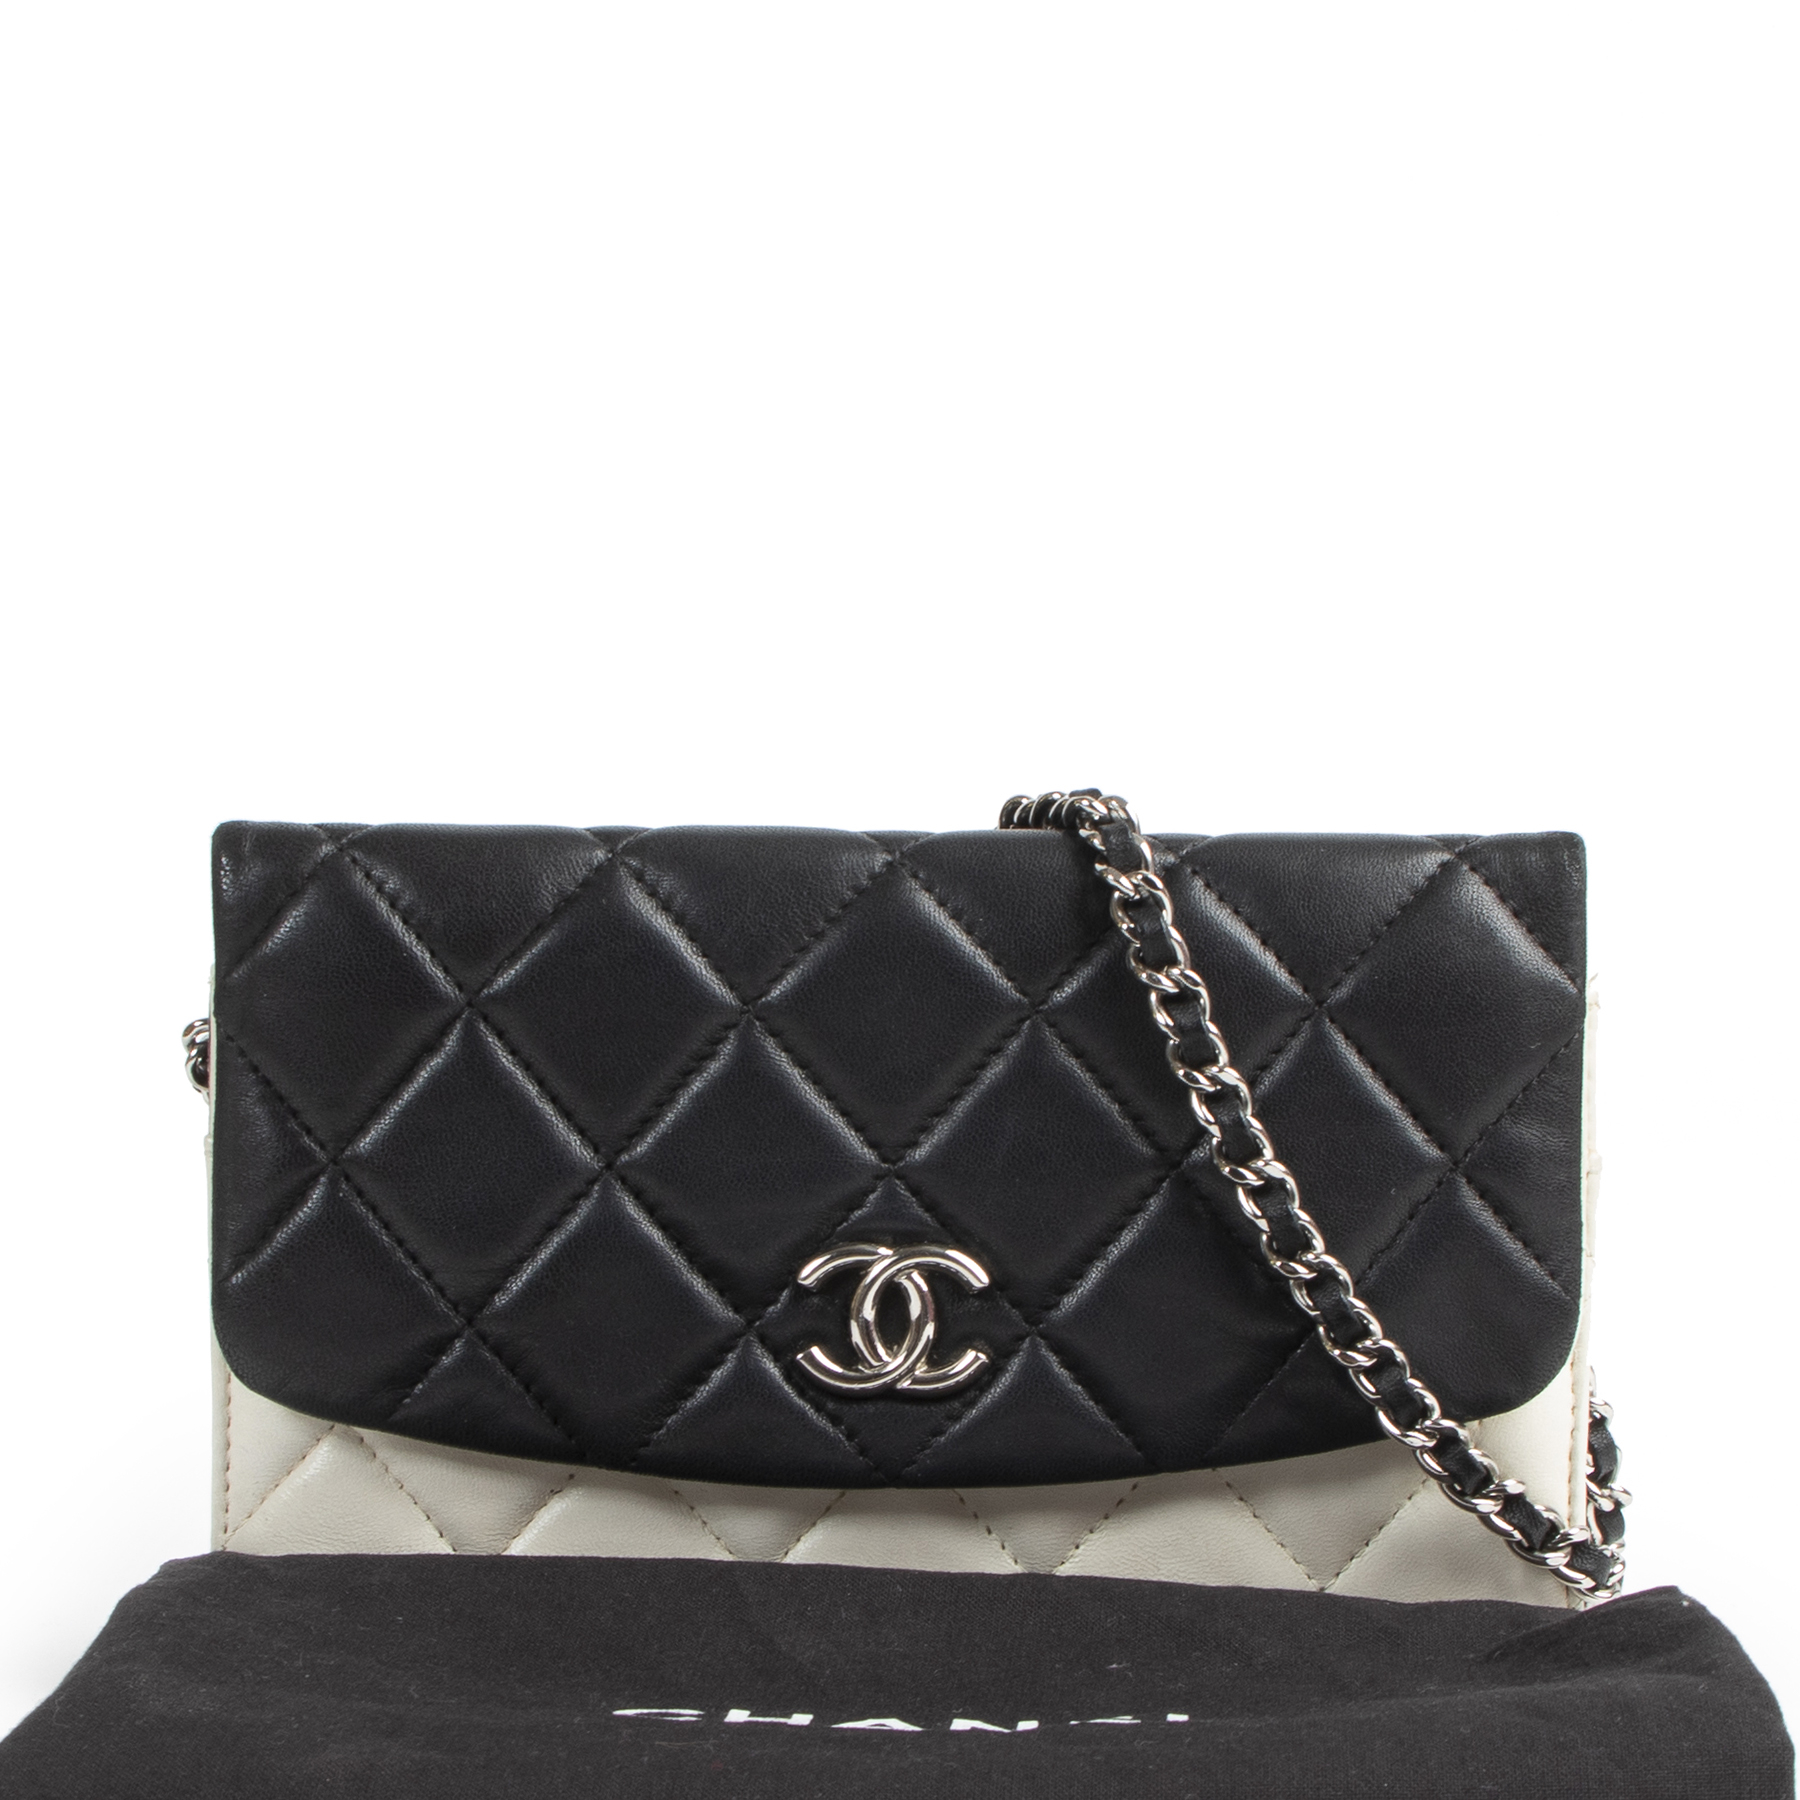 Chanel Lambskin Quilted Double Sided Black & White Wallet On Chain WOC pour le meilleur prix chez Labellov à Anvers